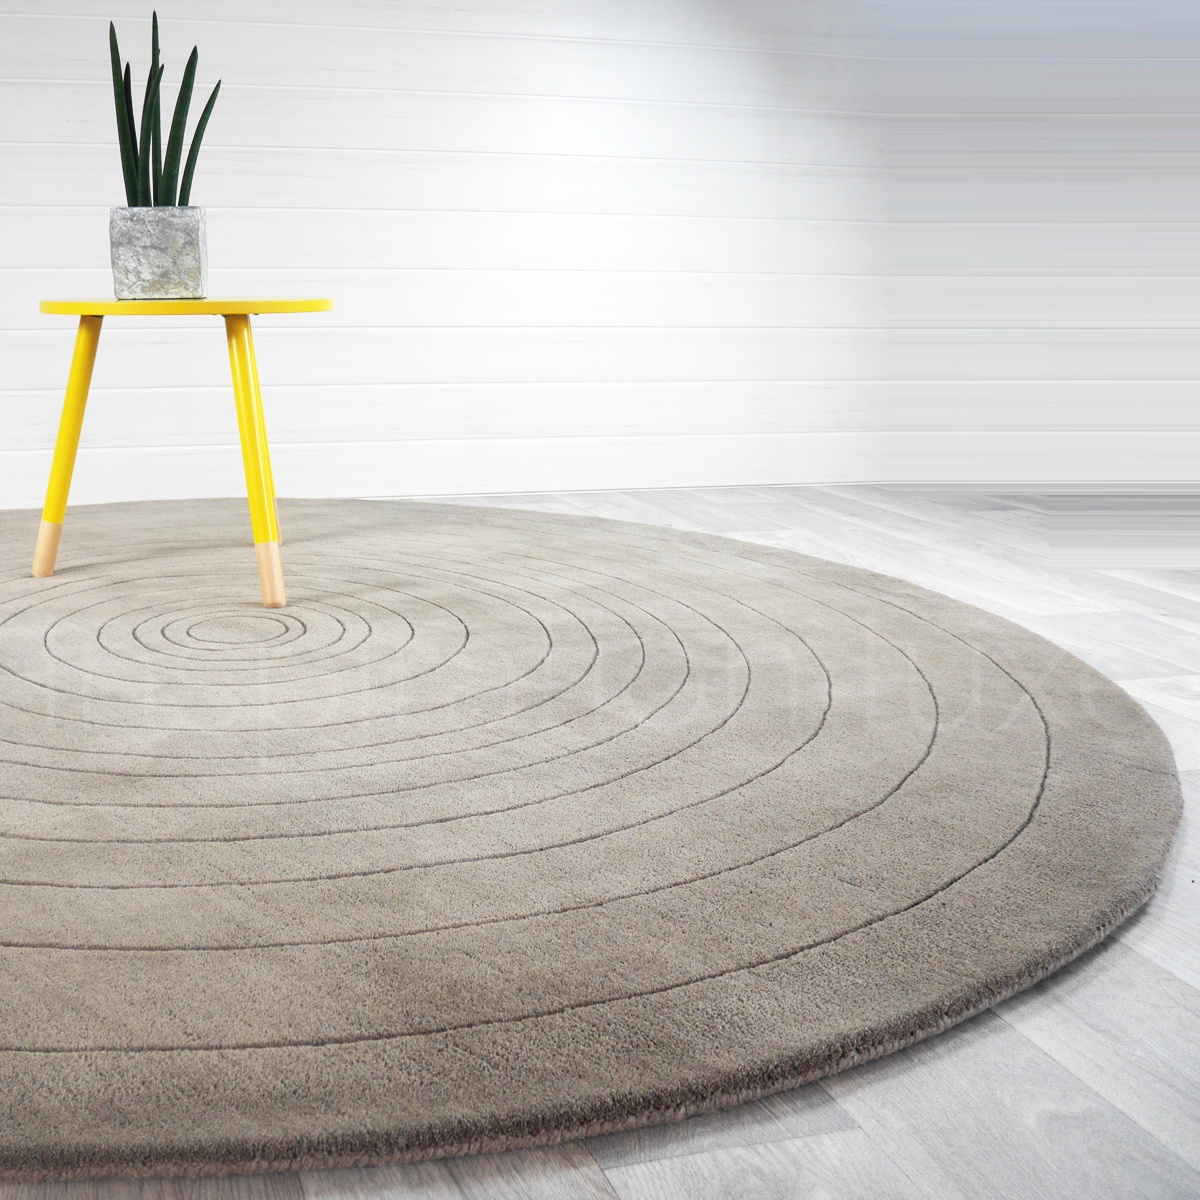 Rond Salon Design Tapis De Salon Rond Maison Design Edfos